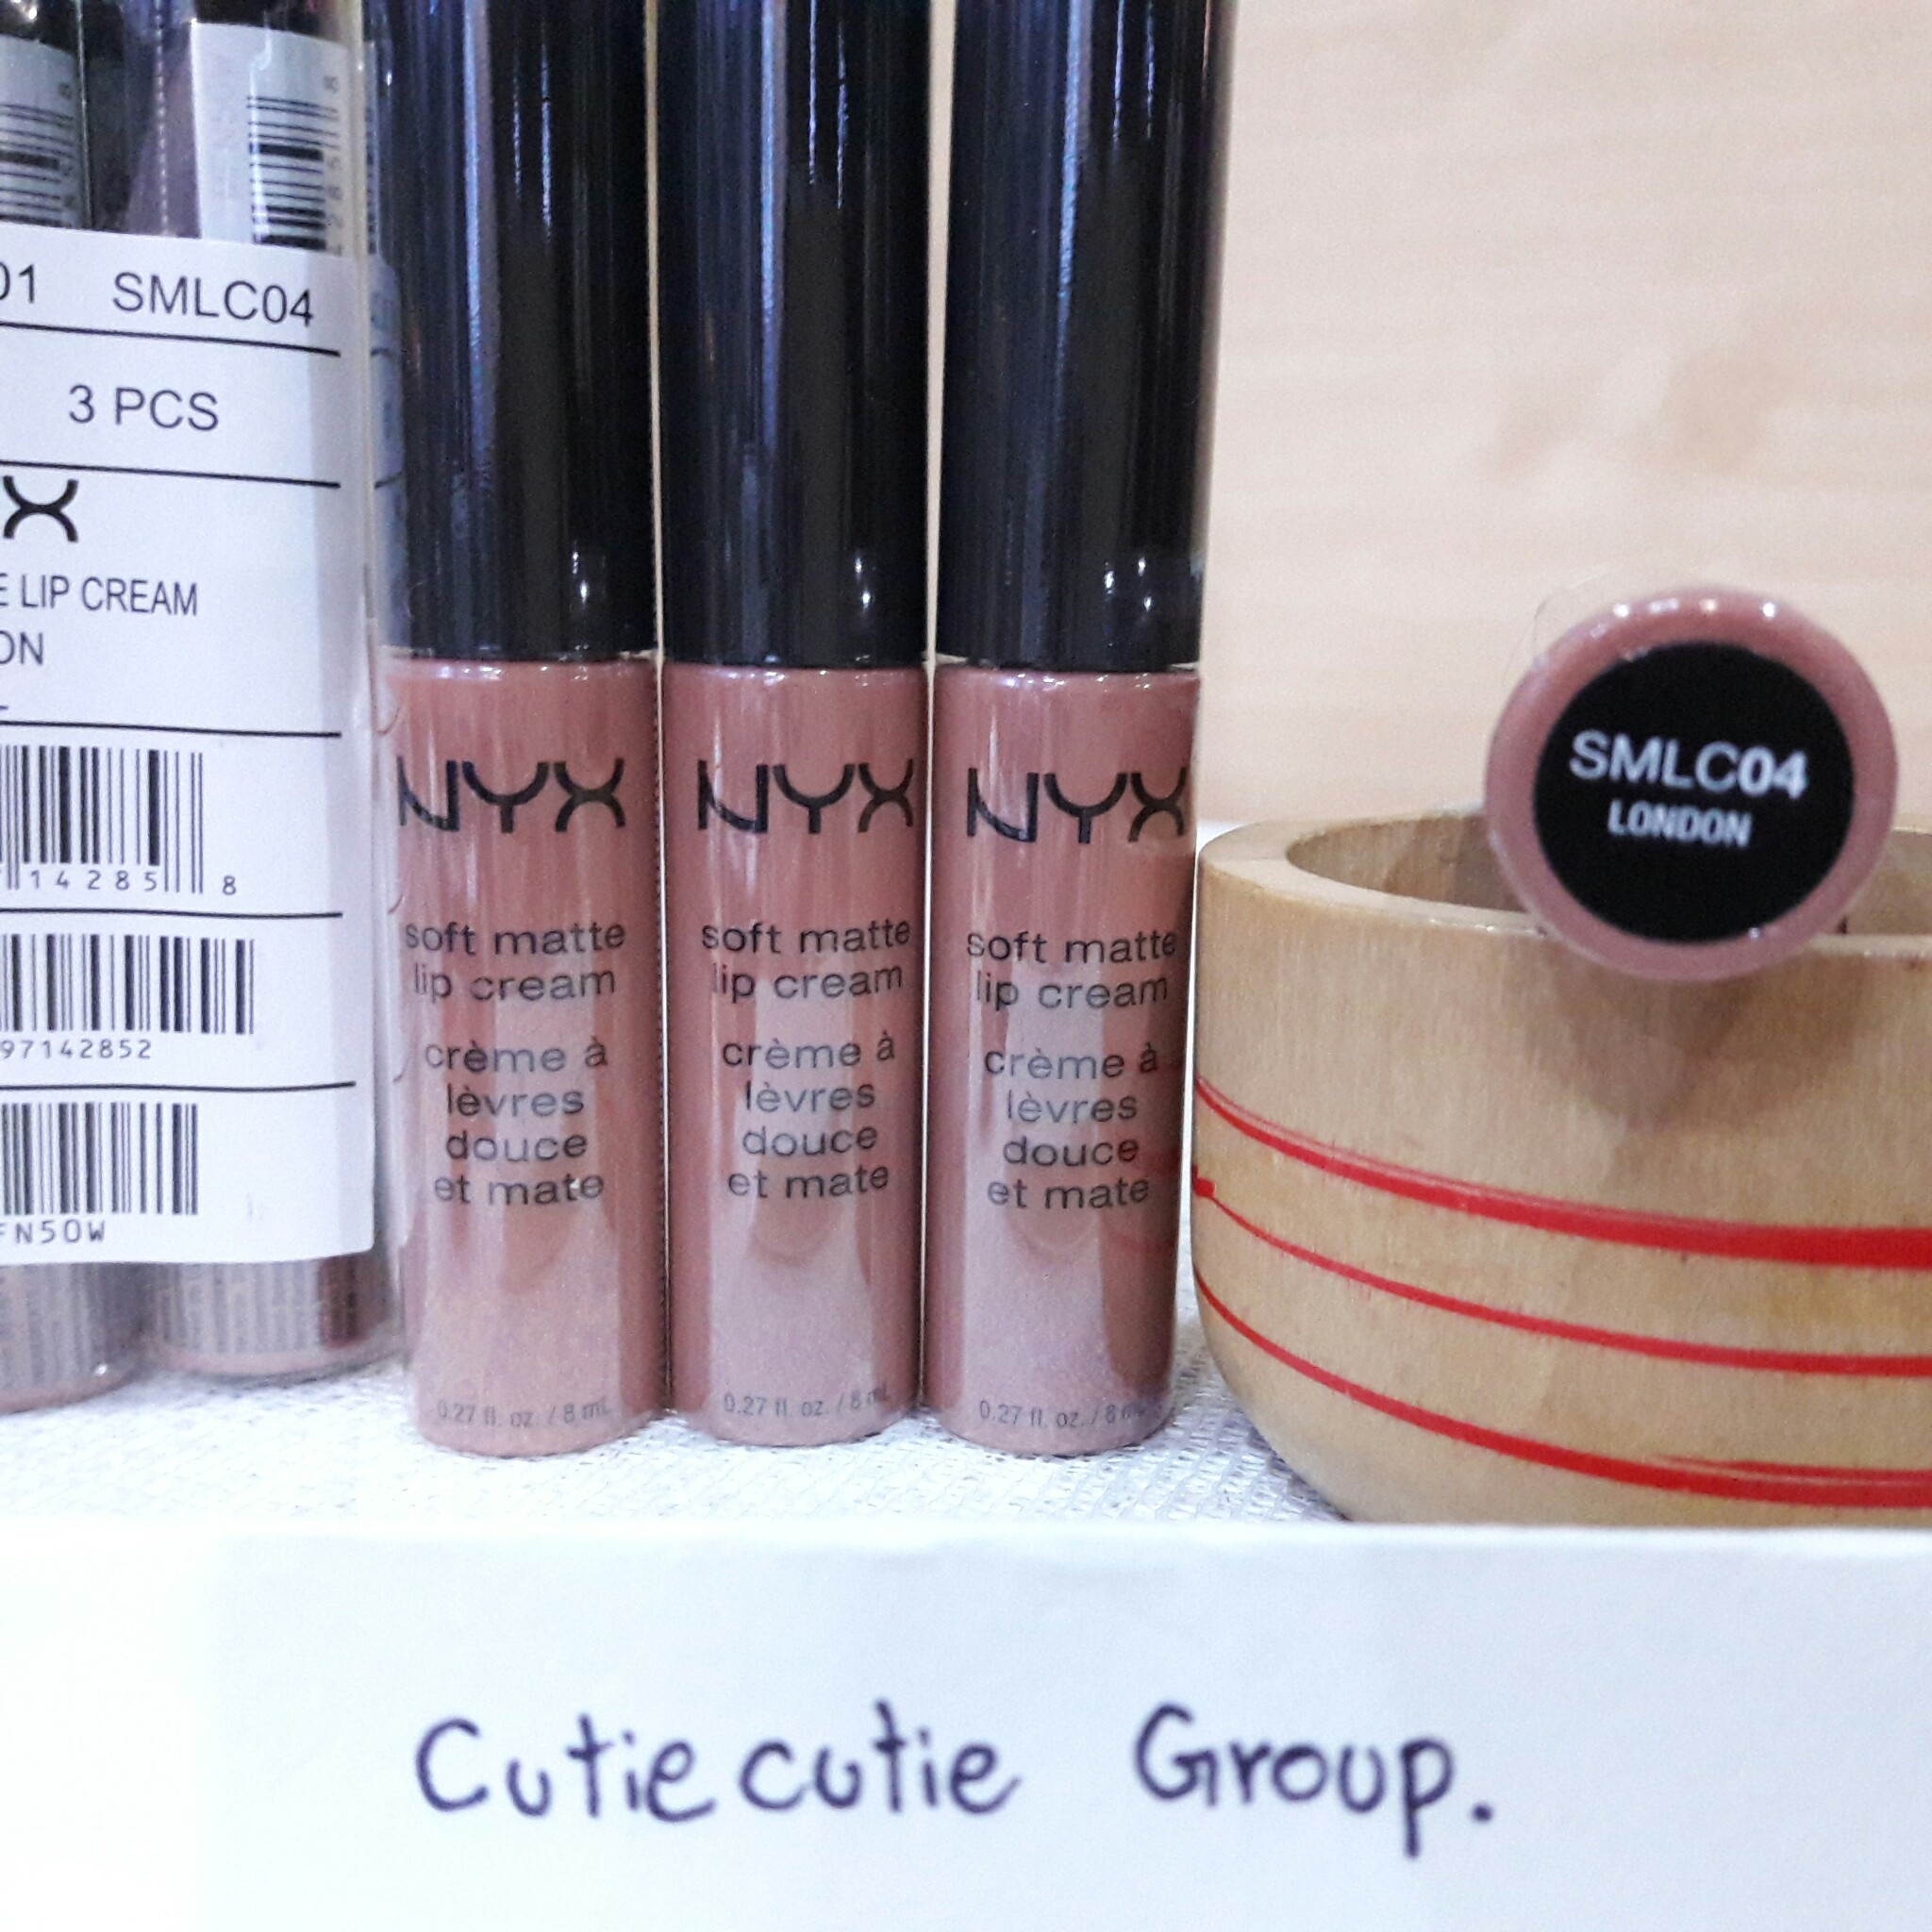 SMLC 04 London NYX Soft Matt Lip Cream